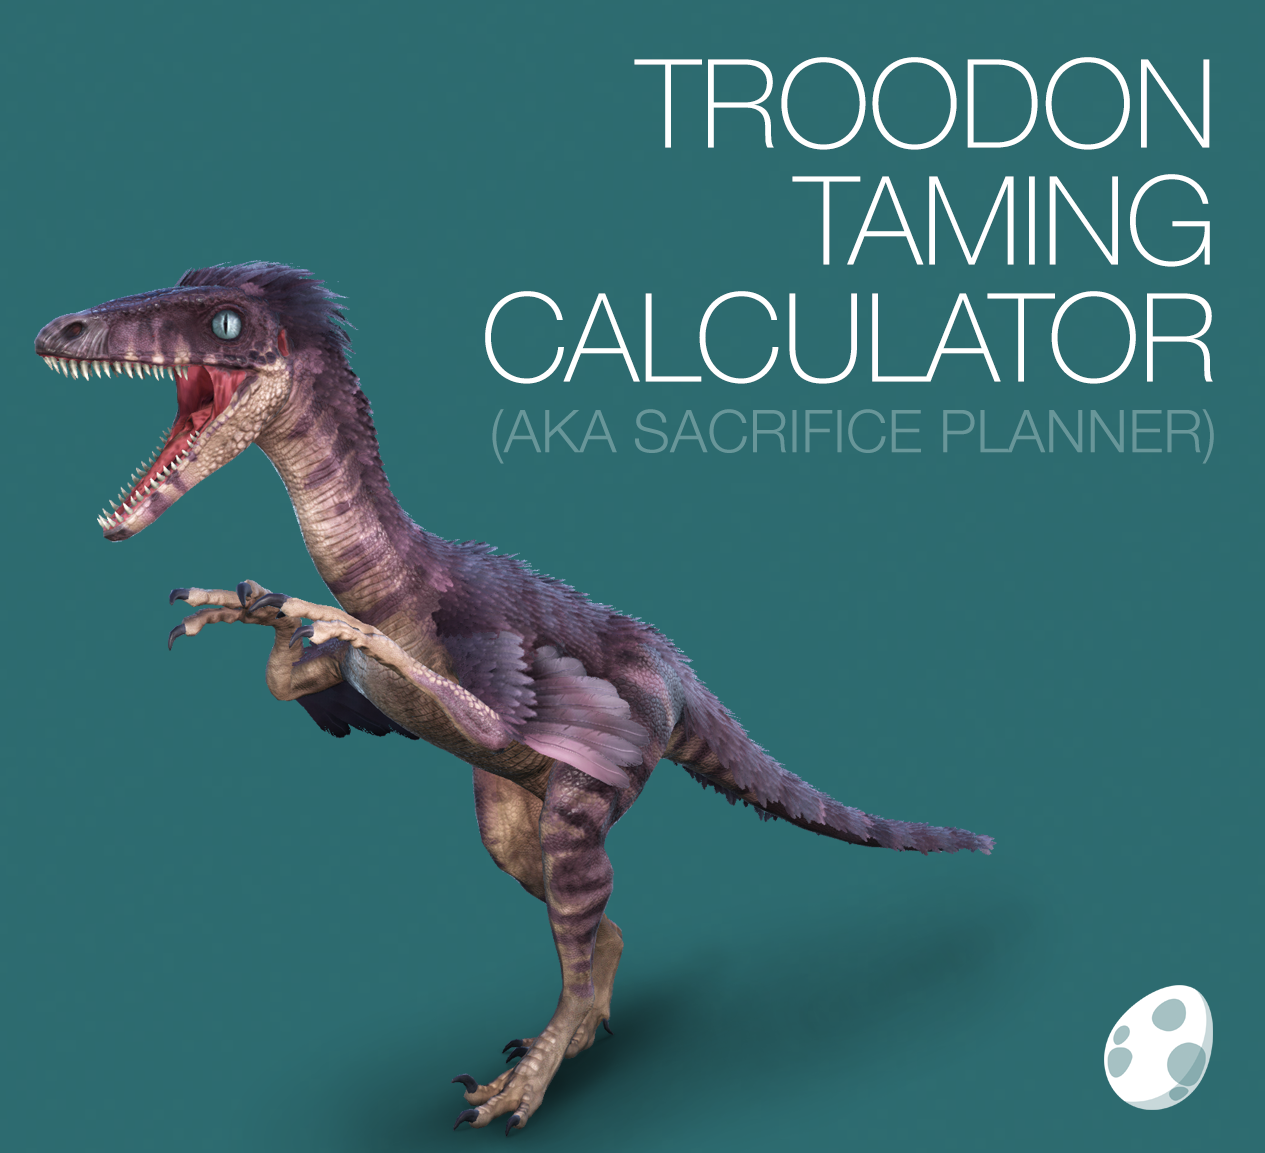 Troodon taming calculator for ark survival evolved httpwww troodon taming calculator for ark survival evolved including taming times food requirements kibble recipes saddle ingredients forumfinder Gallery